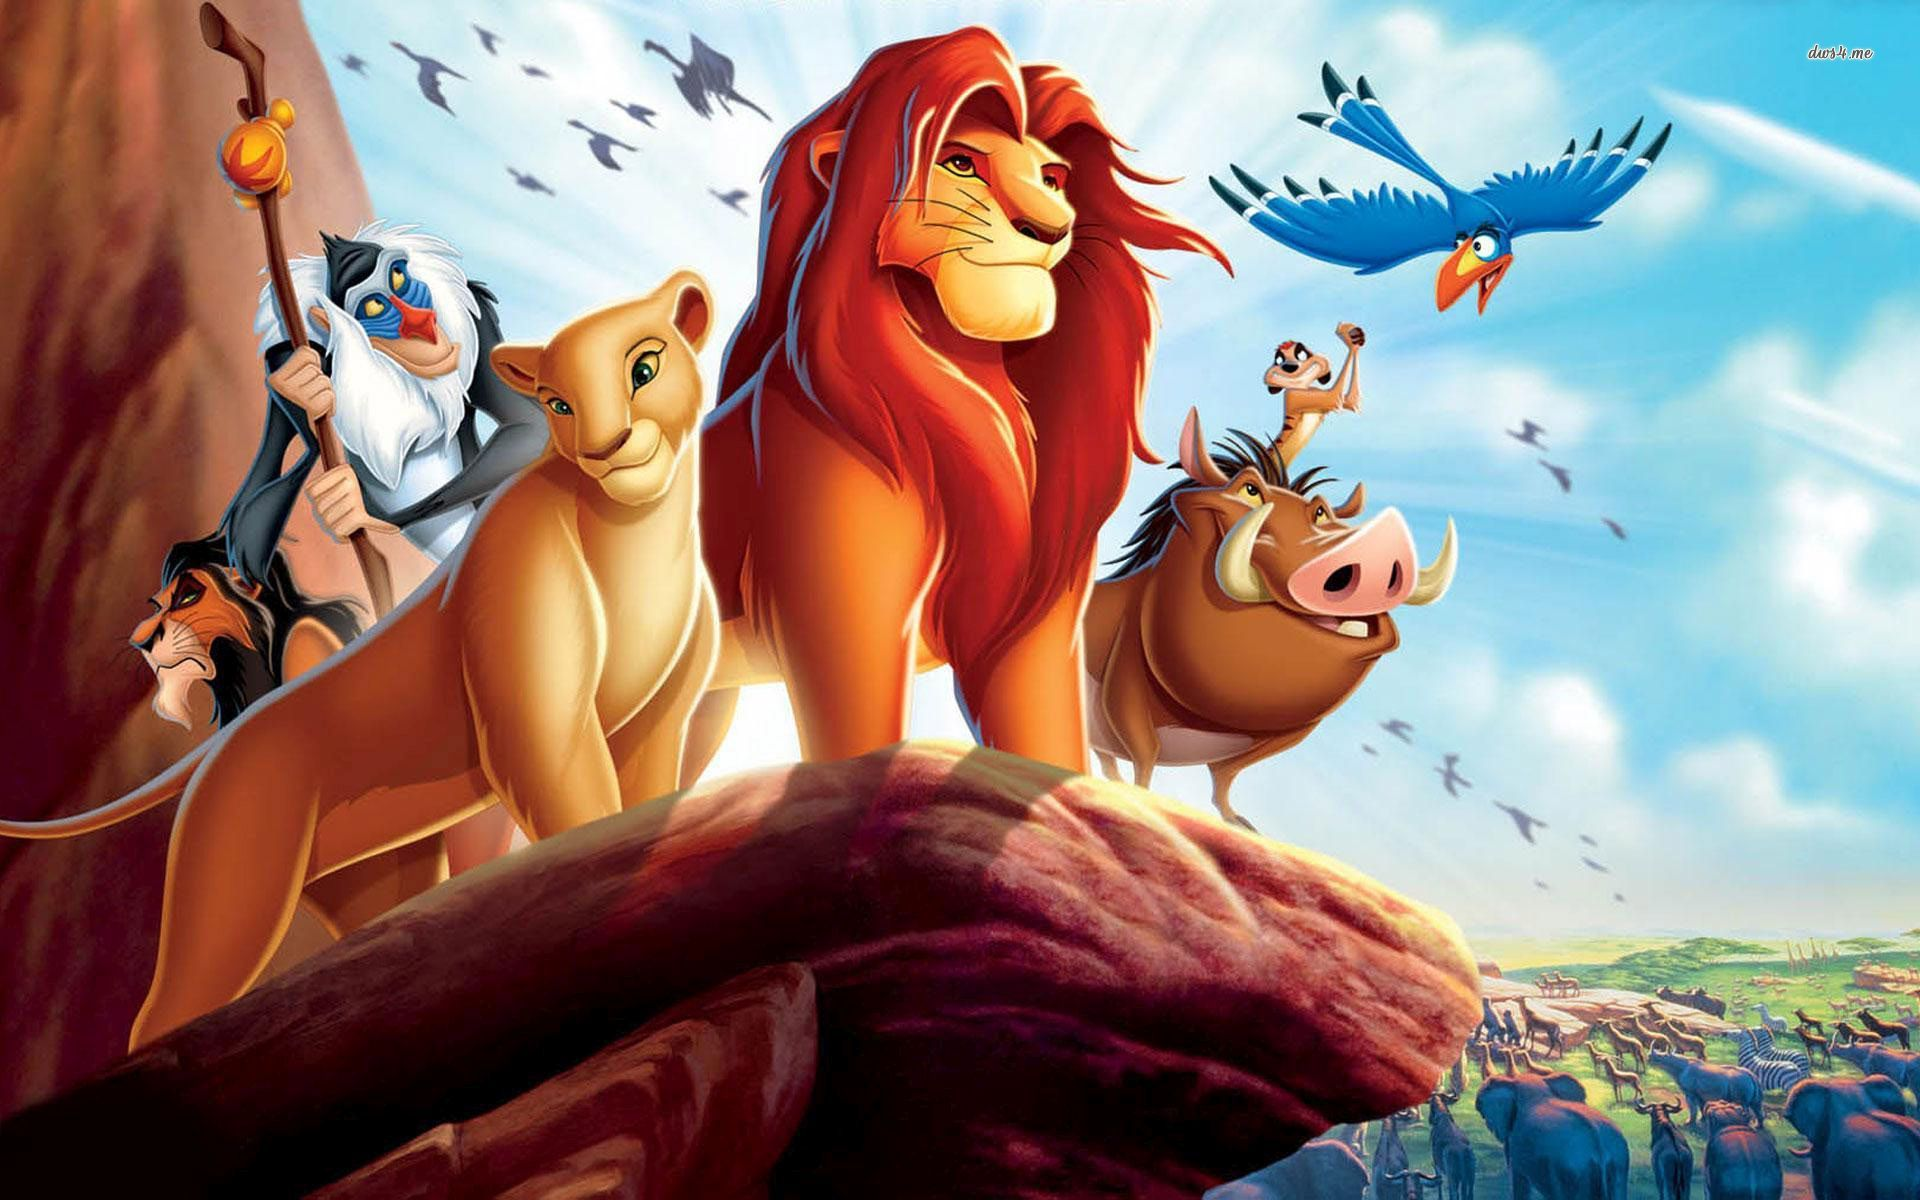 the cast for the lion king has been announced and it includes a